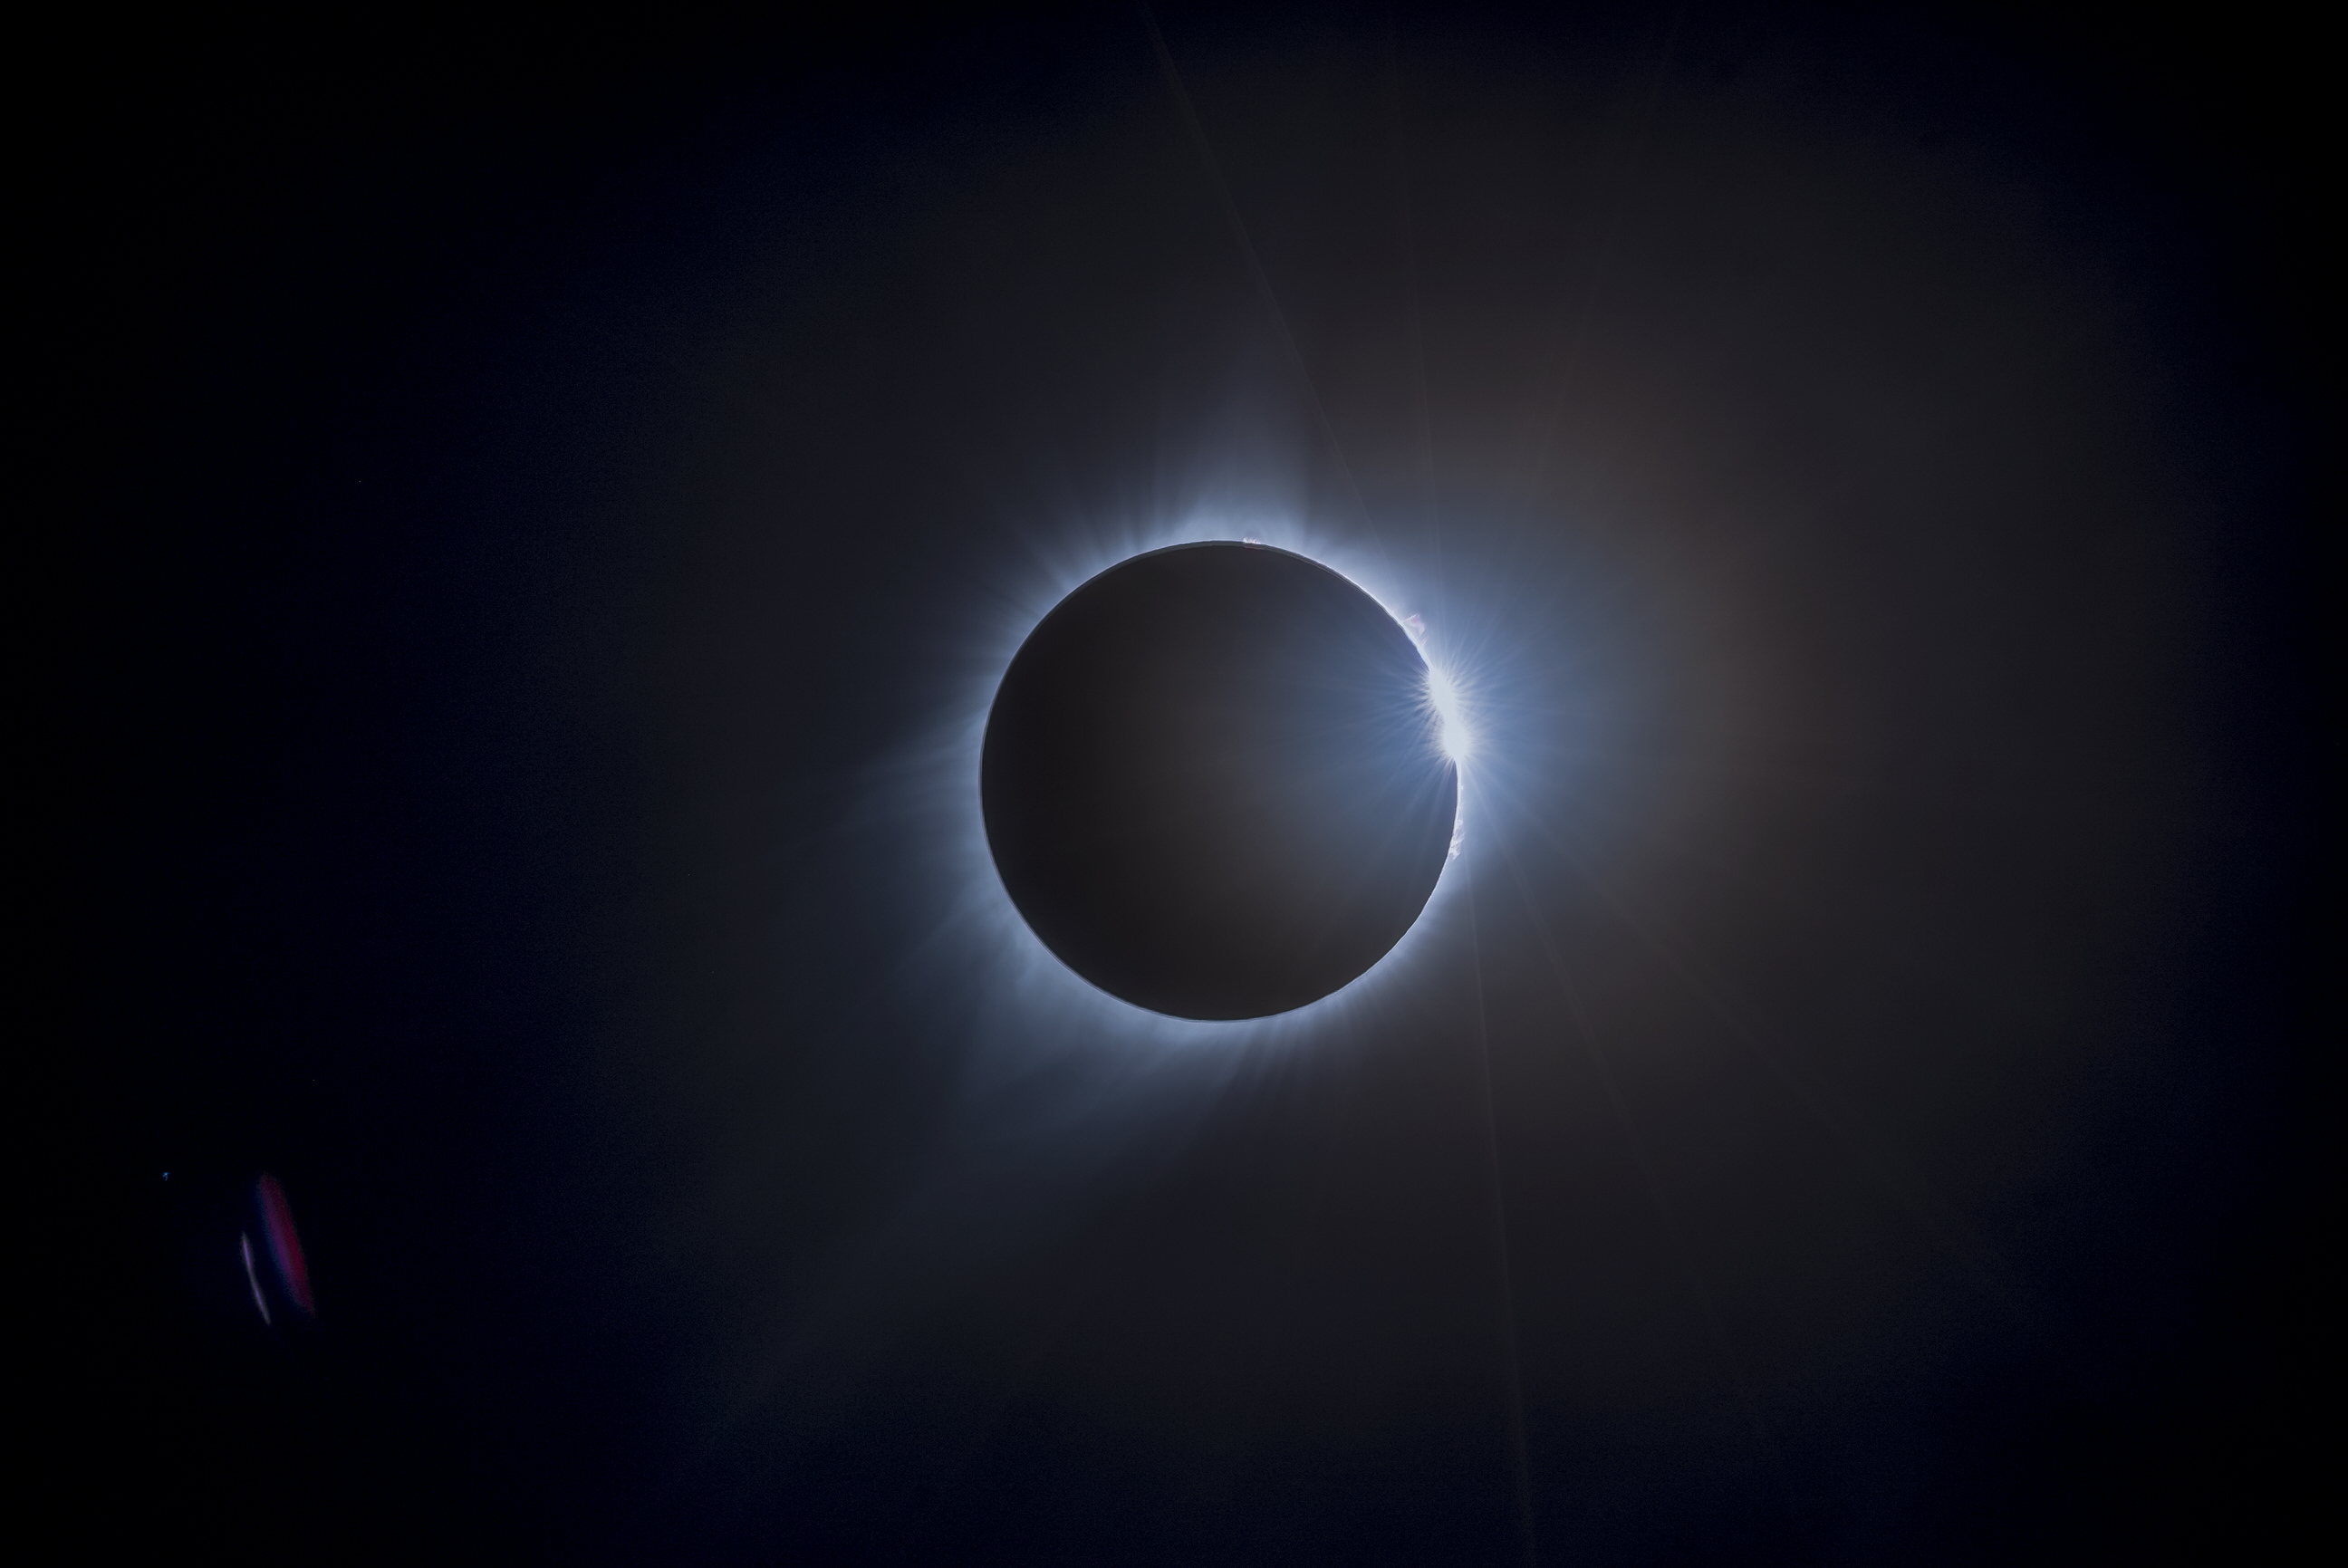 Nasa Photo of 2017 Eclipse